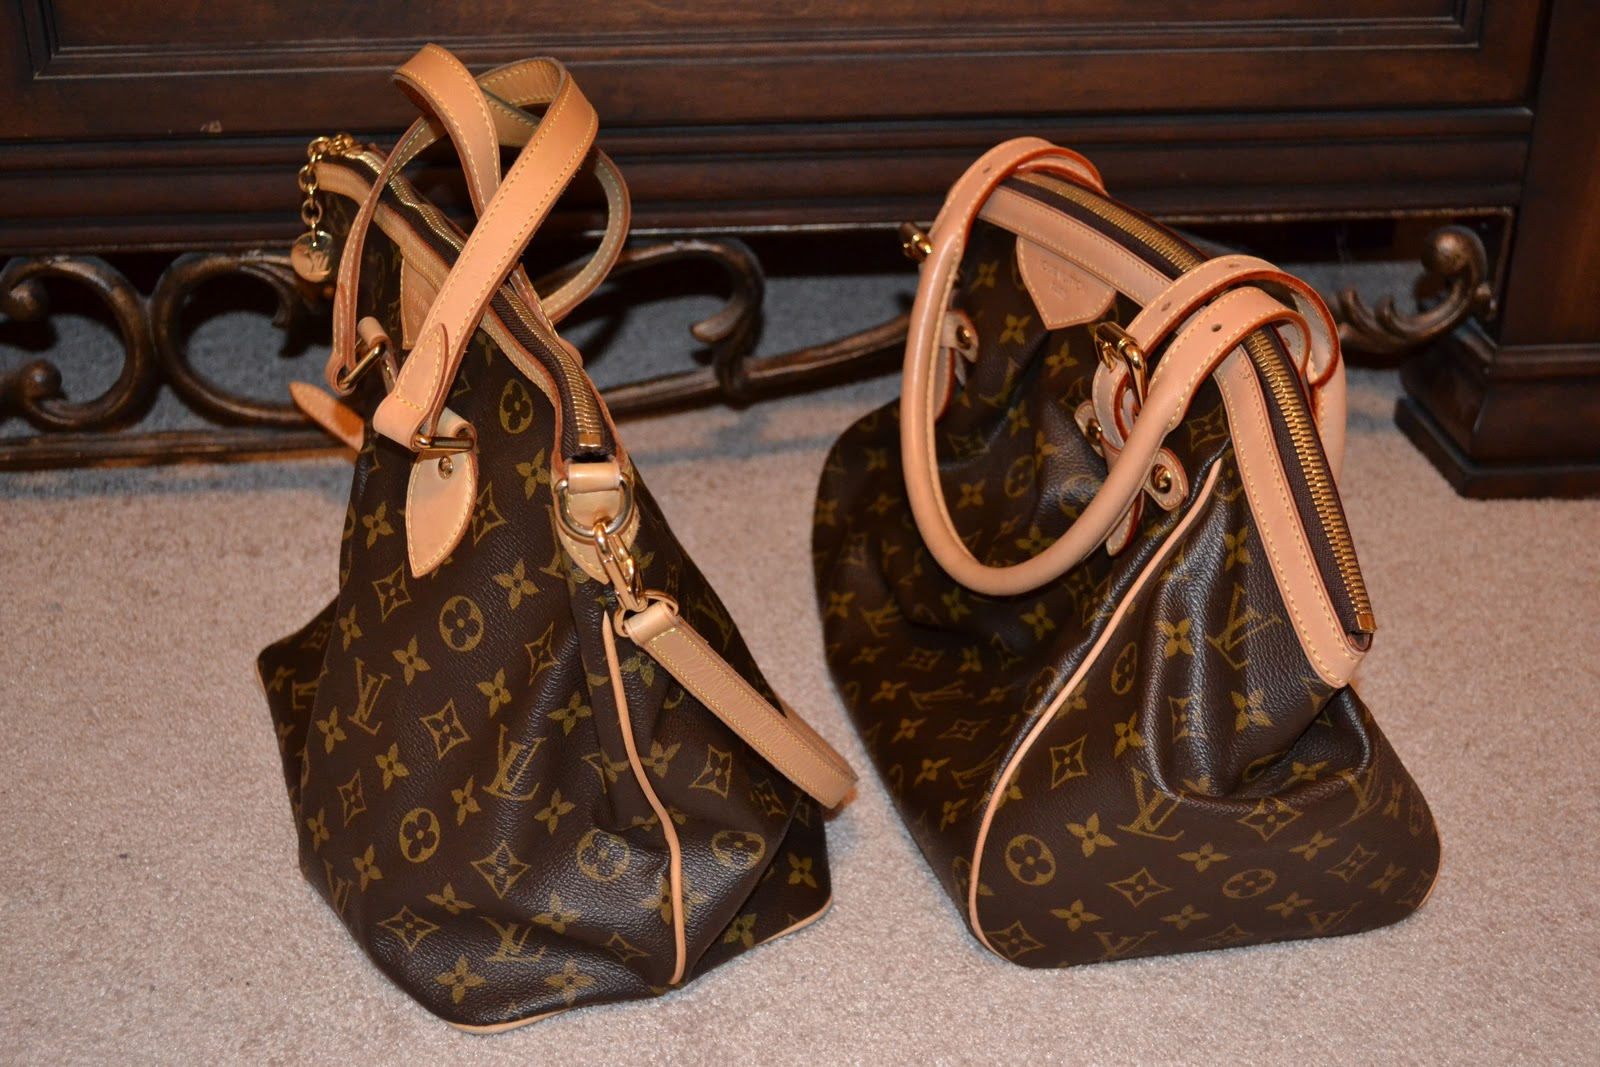 Tivoli Gm Mom S Got A Brand New Bag Louis Vuitton Comparison Review